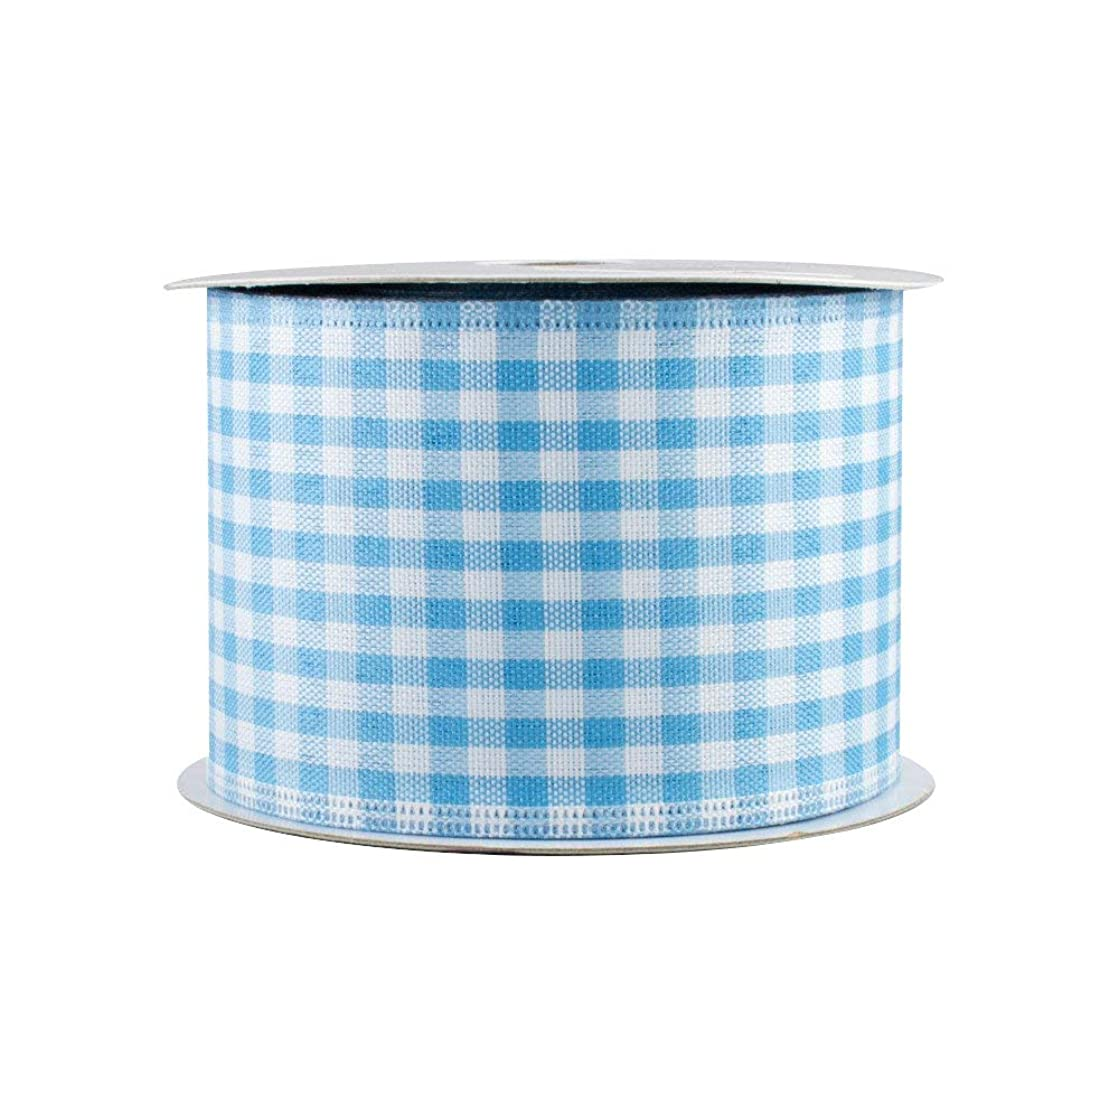 Baby Blue Gingham Wired Ribbon - 2 1/2 Inch x 10 Yards, Easter, Spring, Summer, Christmas Decor, Birthday, Rustic Wedding, Farmhouse Party, Baby Shower, Gender Reveal, Bows, Wreath, Swag, Garland